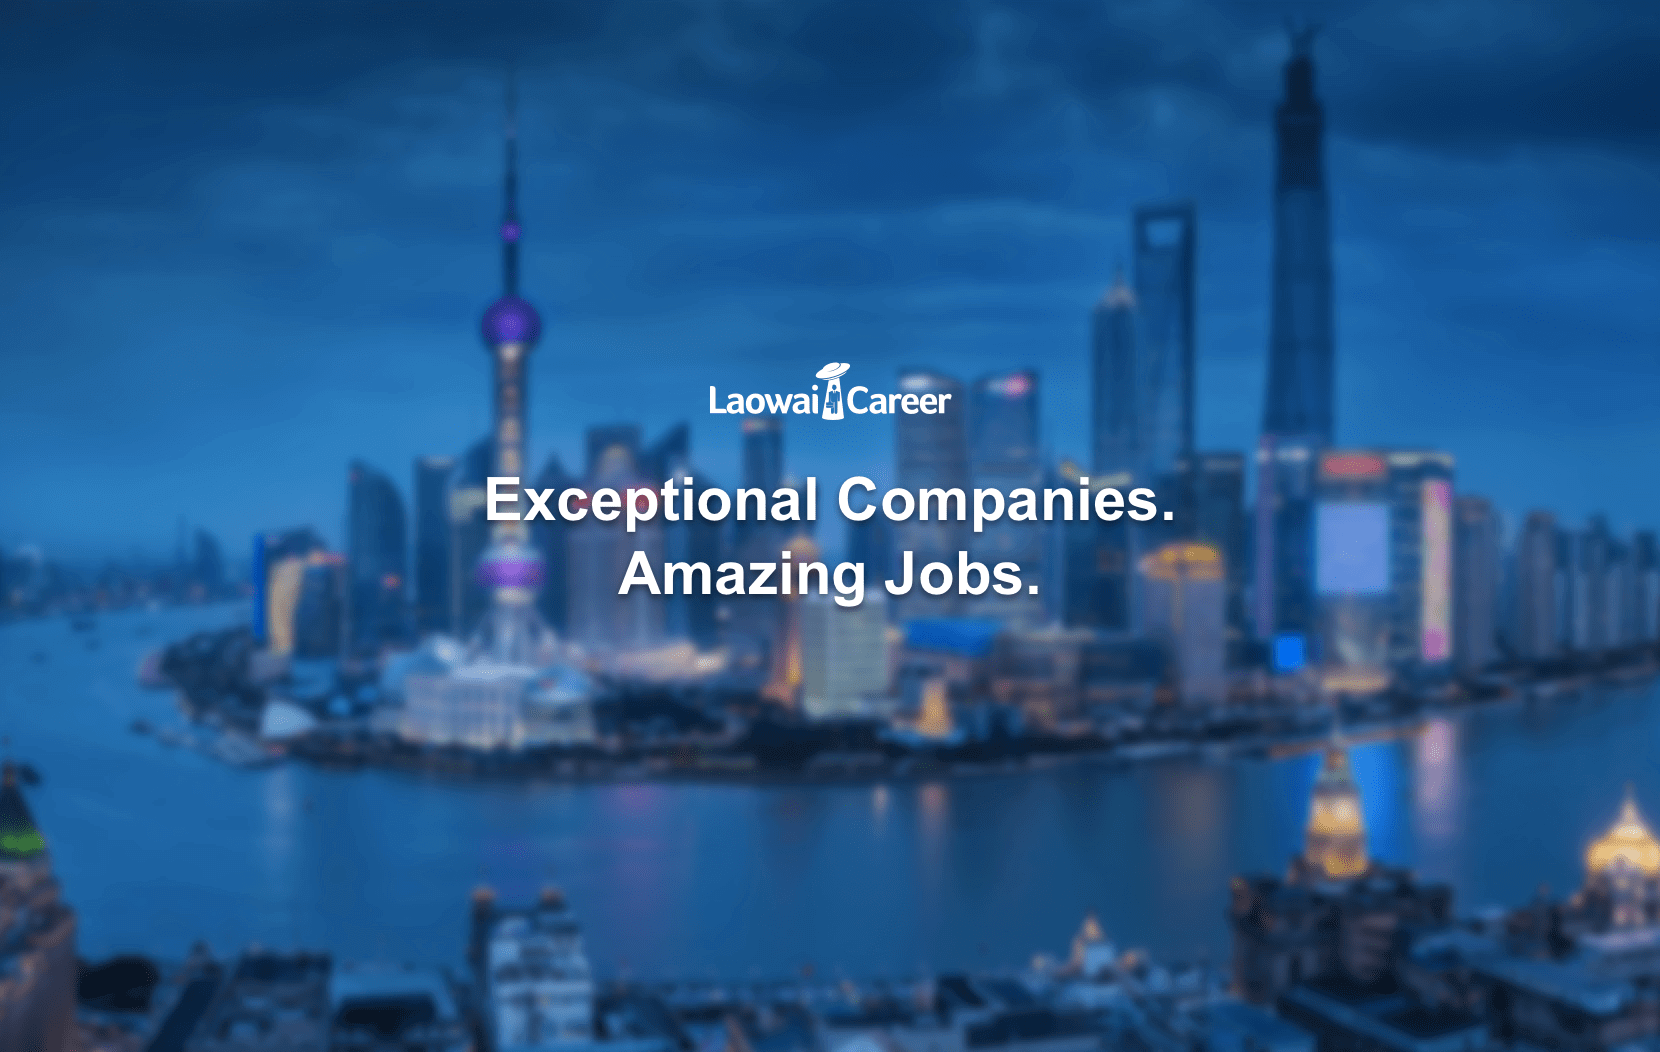 Longing for a Job? Laowai Career Provides the Best Job Opportunities